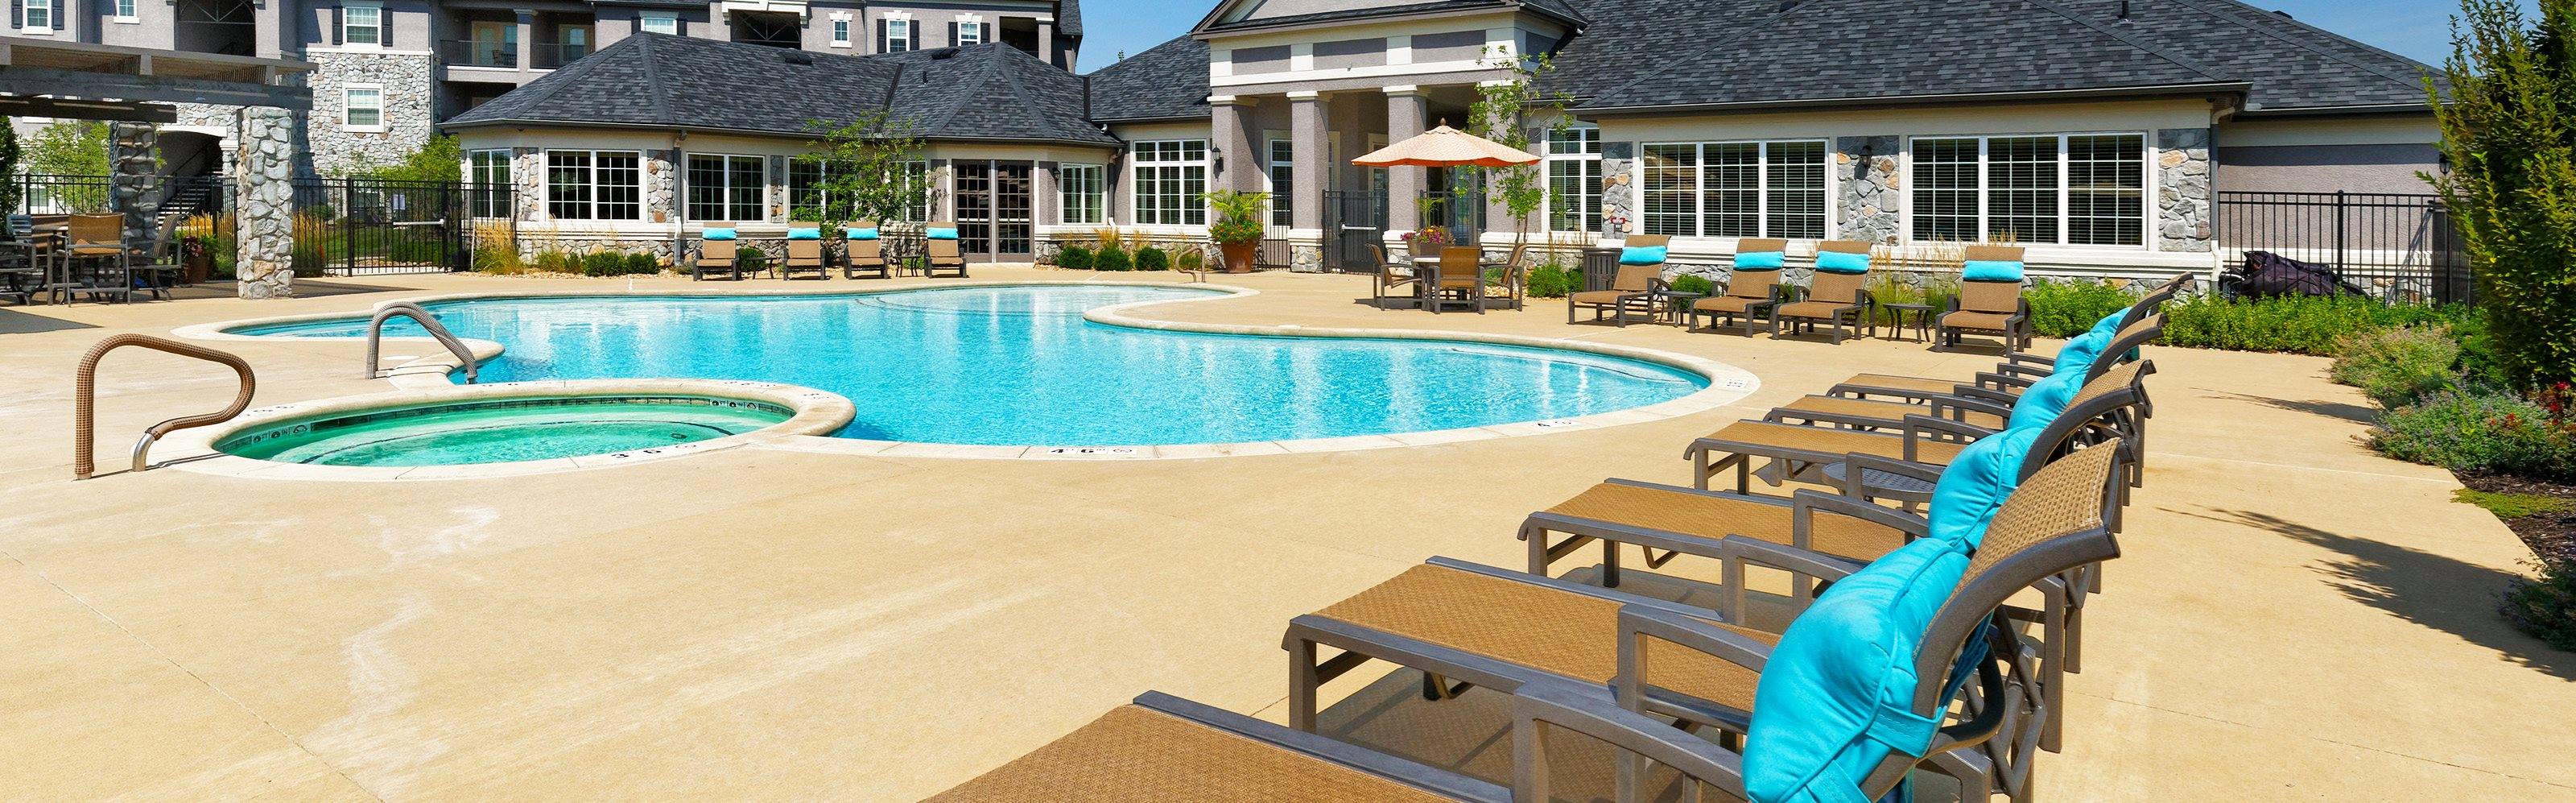 Corbin Greens Apartments pool area